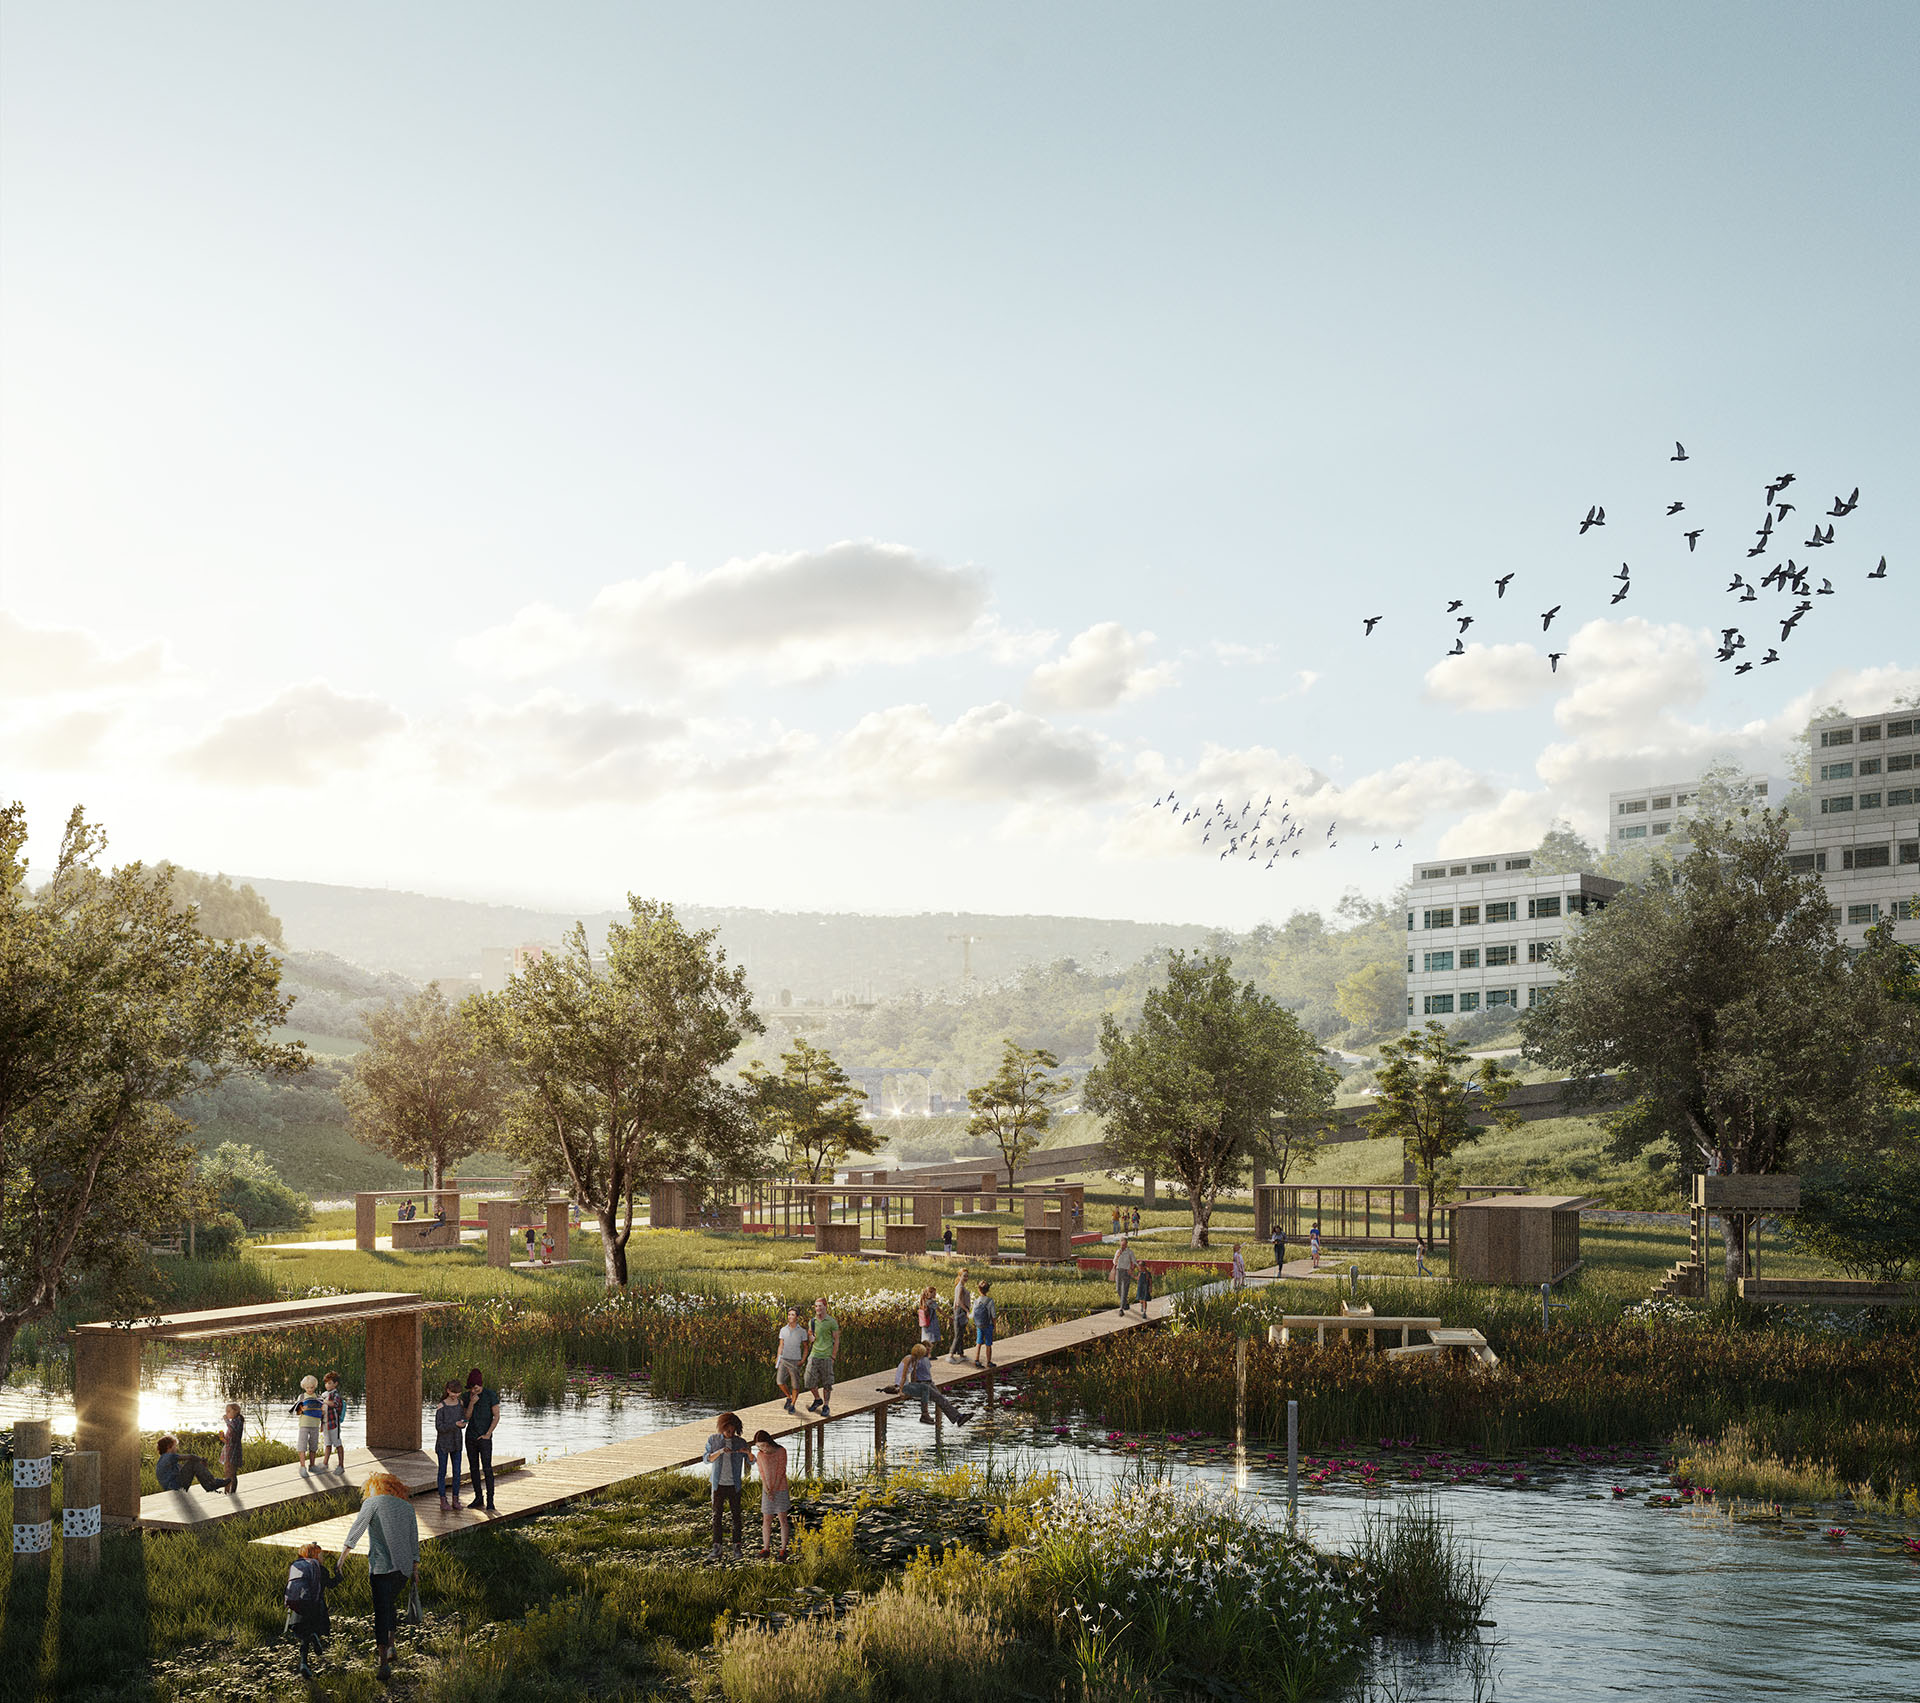 render_ivabox_CAPS_izmir_meles_Competition_2